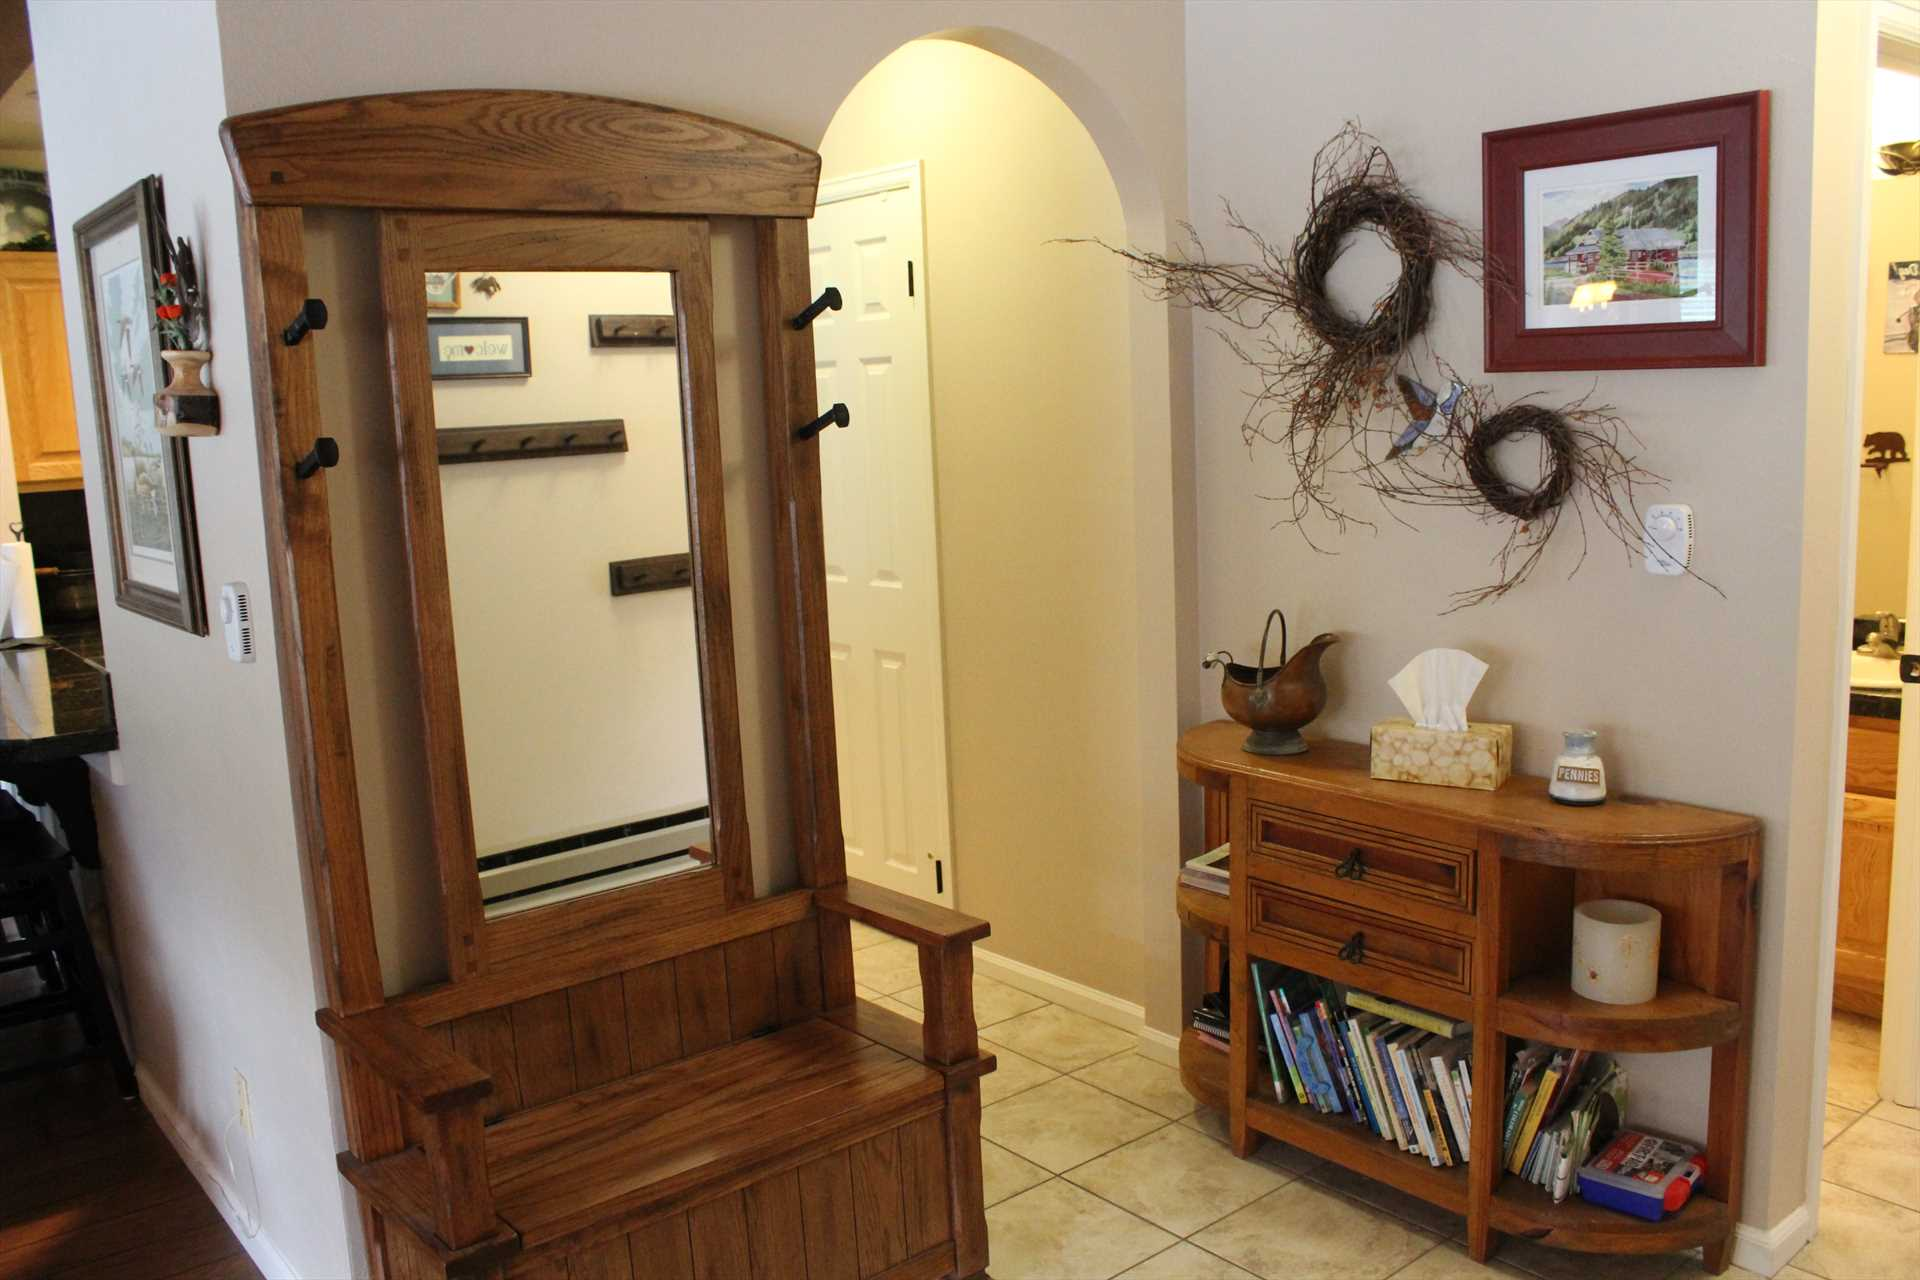 Entry way from front door looking into kitchen